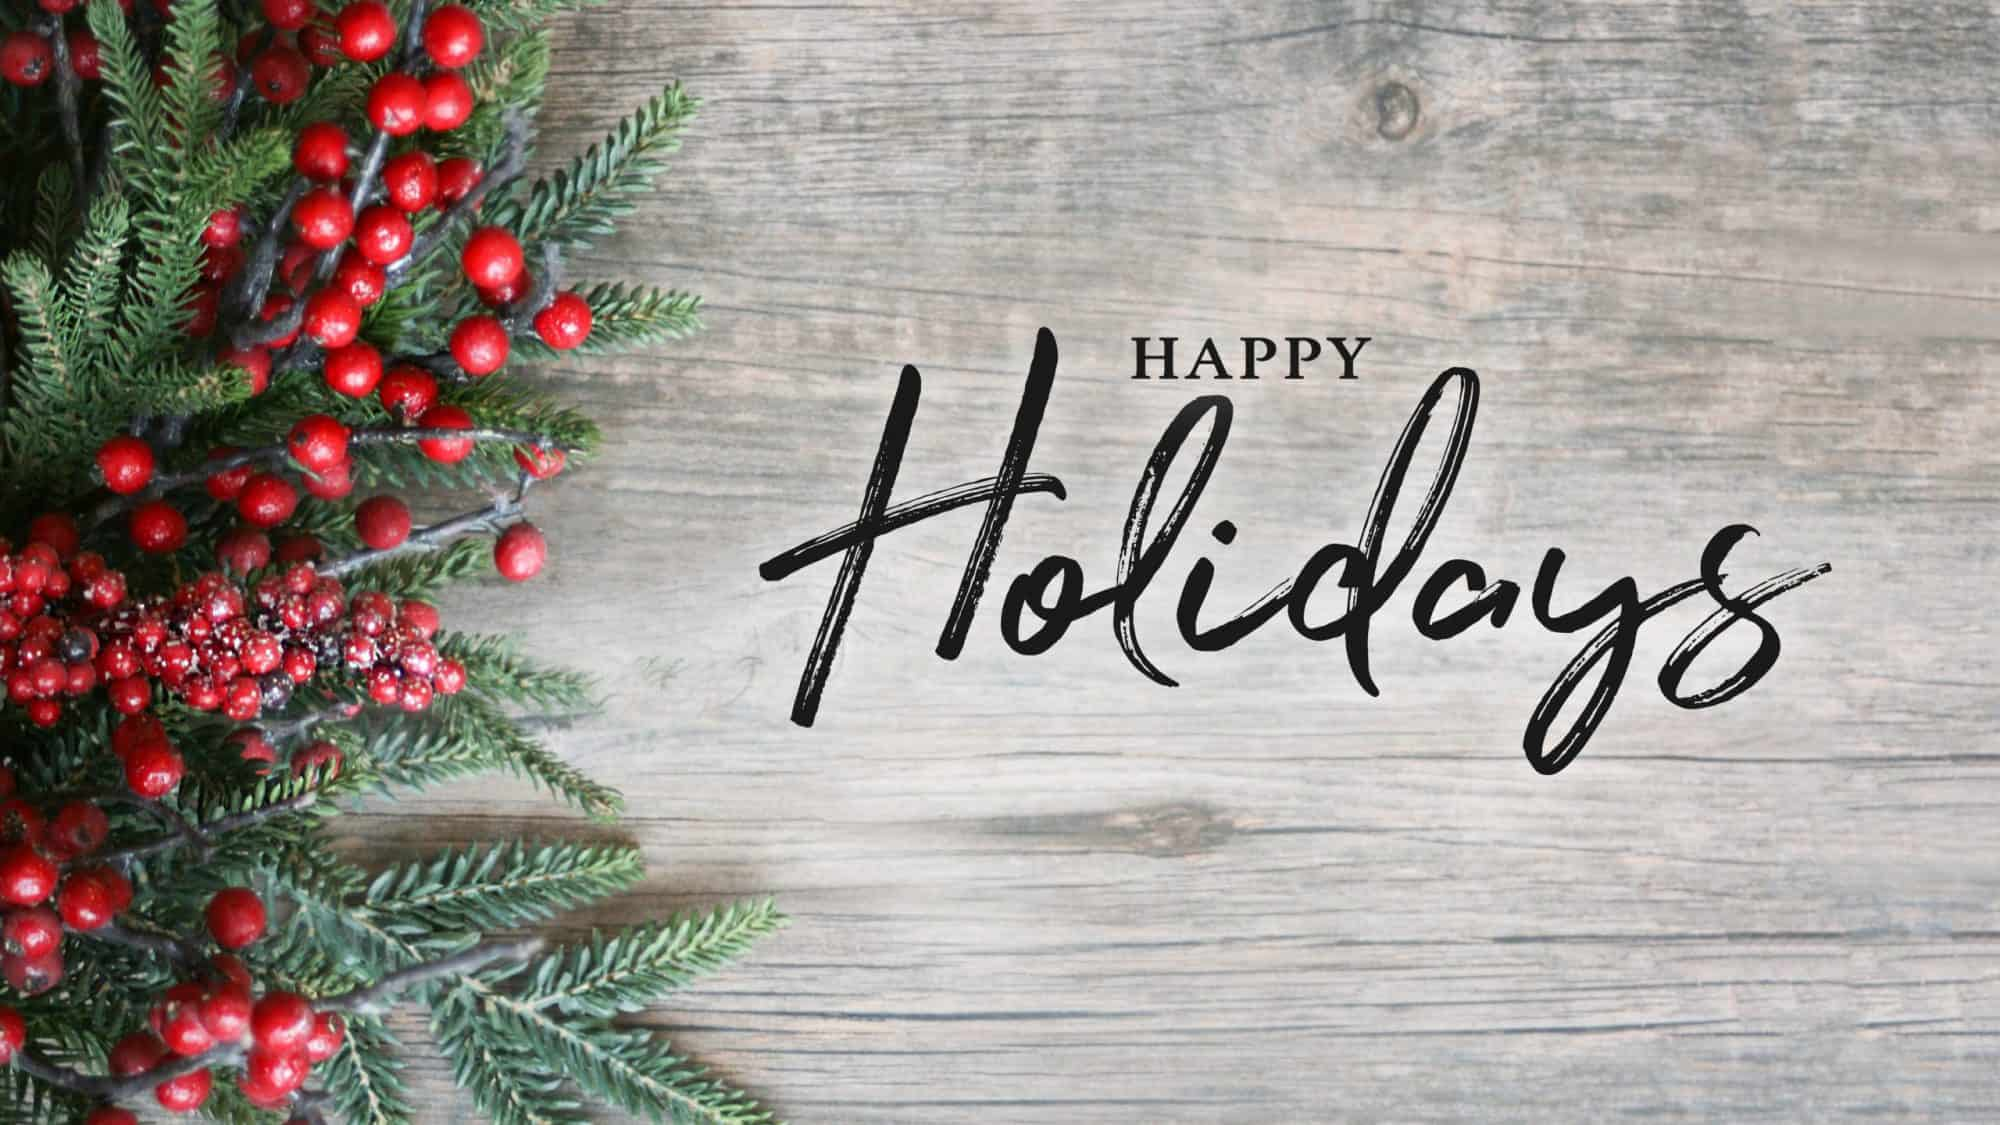 From all of us at NorthStar Regional, Happy Holidays!